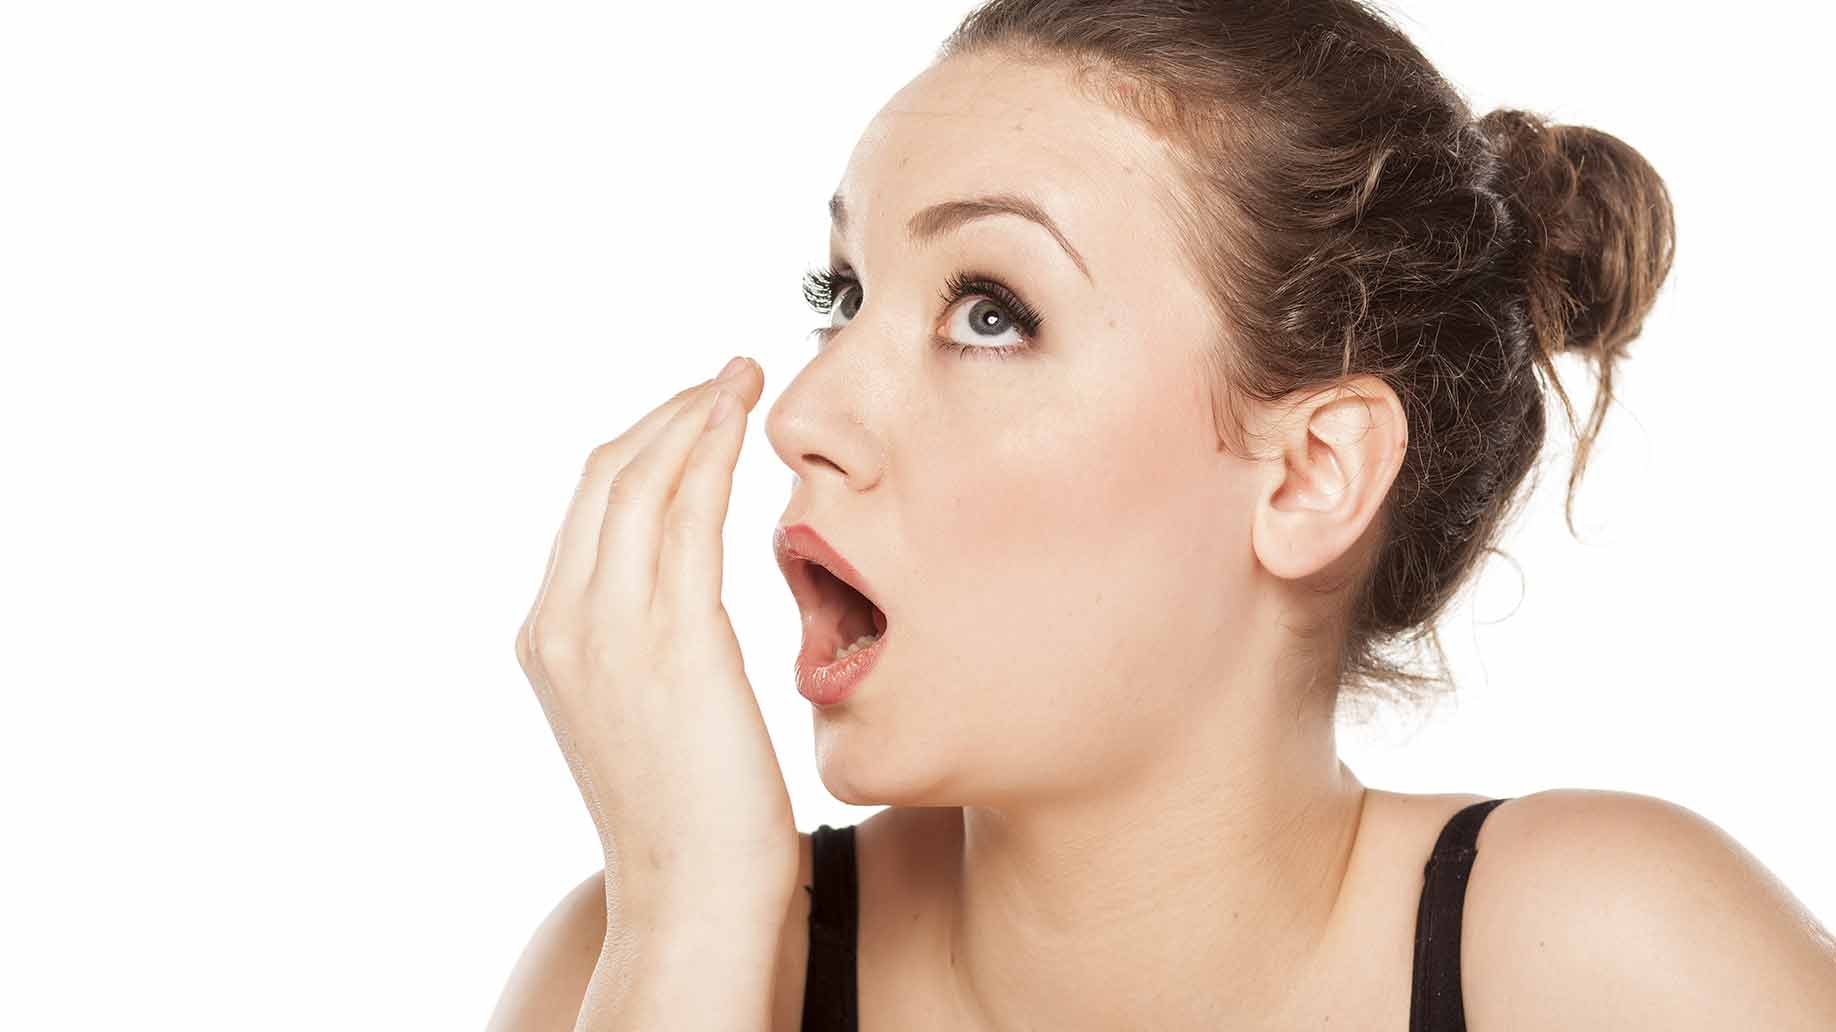 bad breath halitosis causes how to get rid of naturally remedies